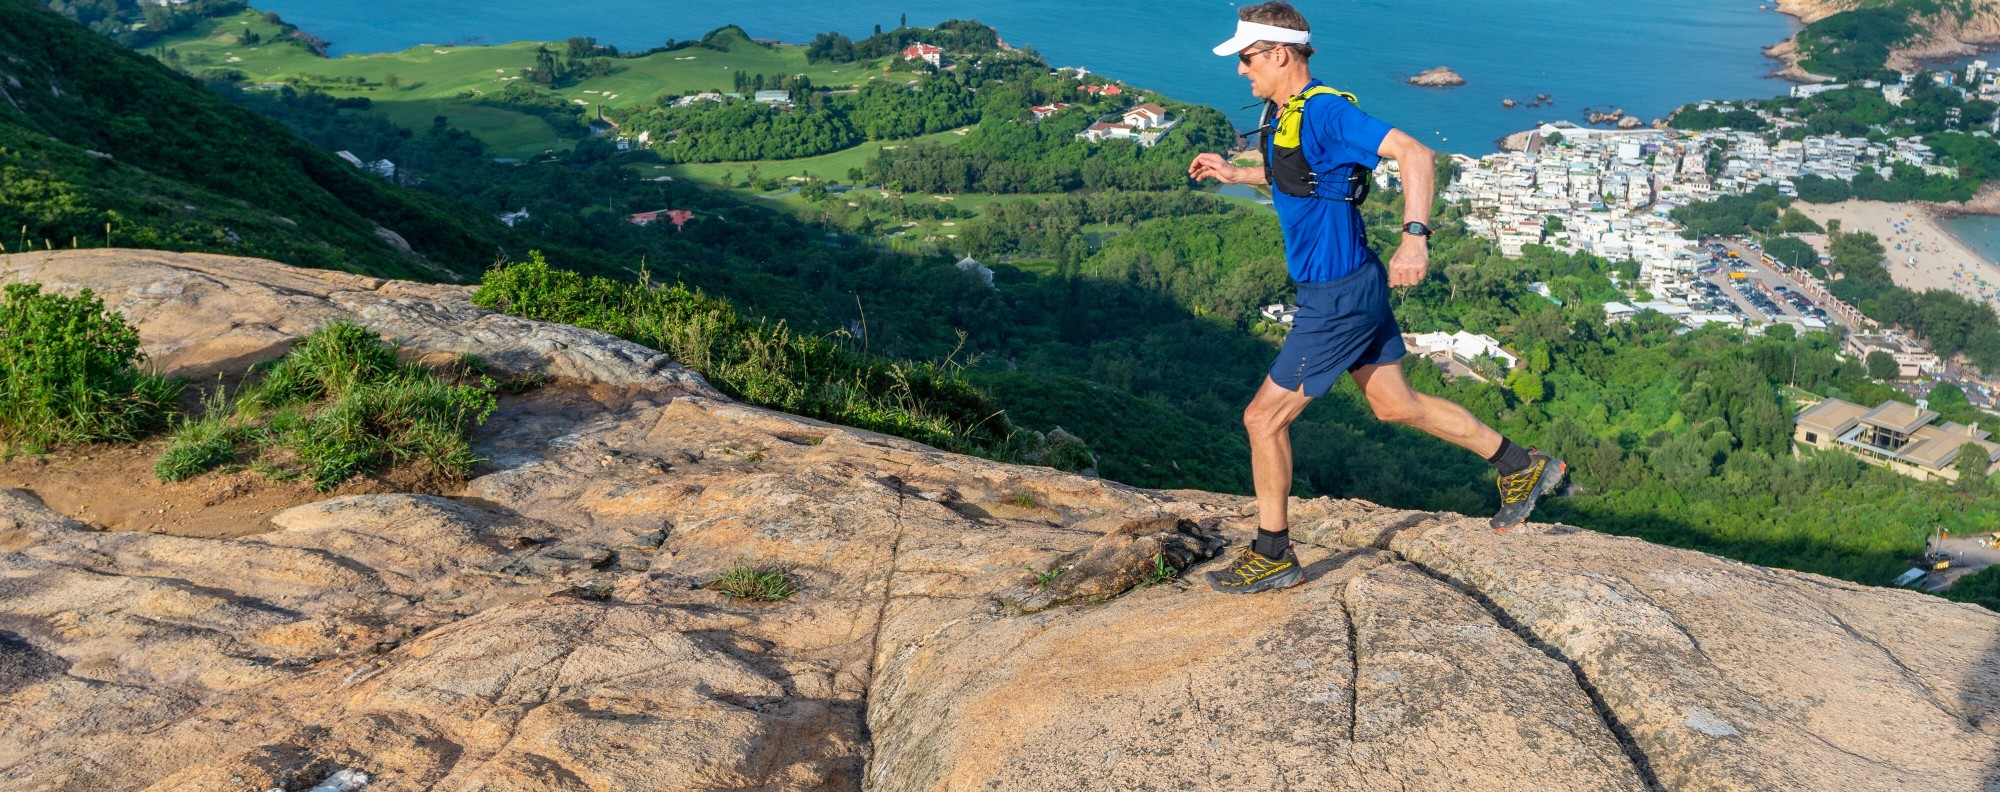 Mark Western runs 360km around Hong Kong, establishing a new route that could be Hong Kong's first Fastest Known Time trail. Photo: Handout